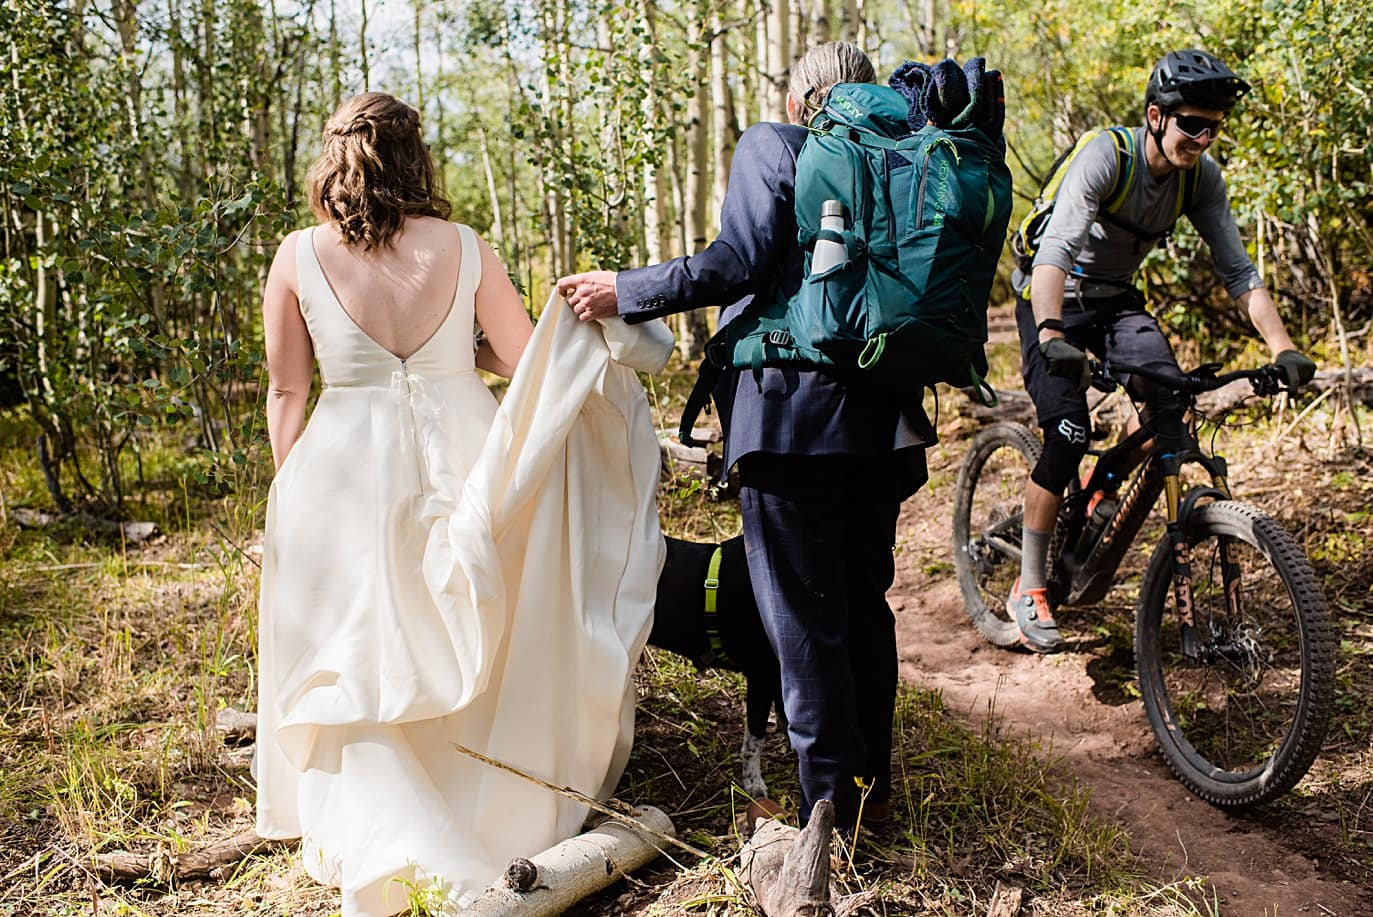 bride and groom hike past mountain biker on way to ceremony spot in Crested Butte for private elopement by Aspen wedding photographer Jennie Crate